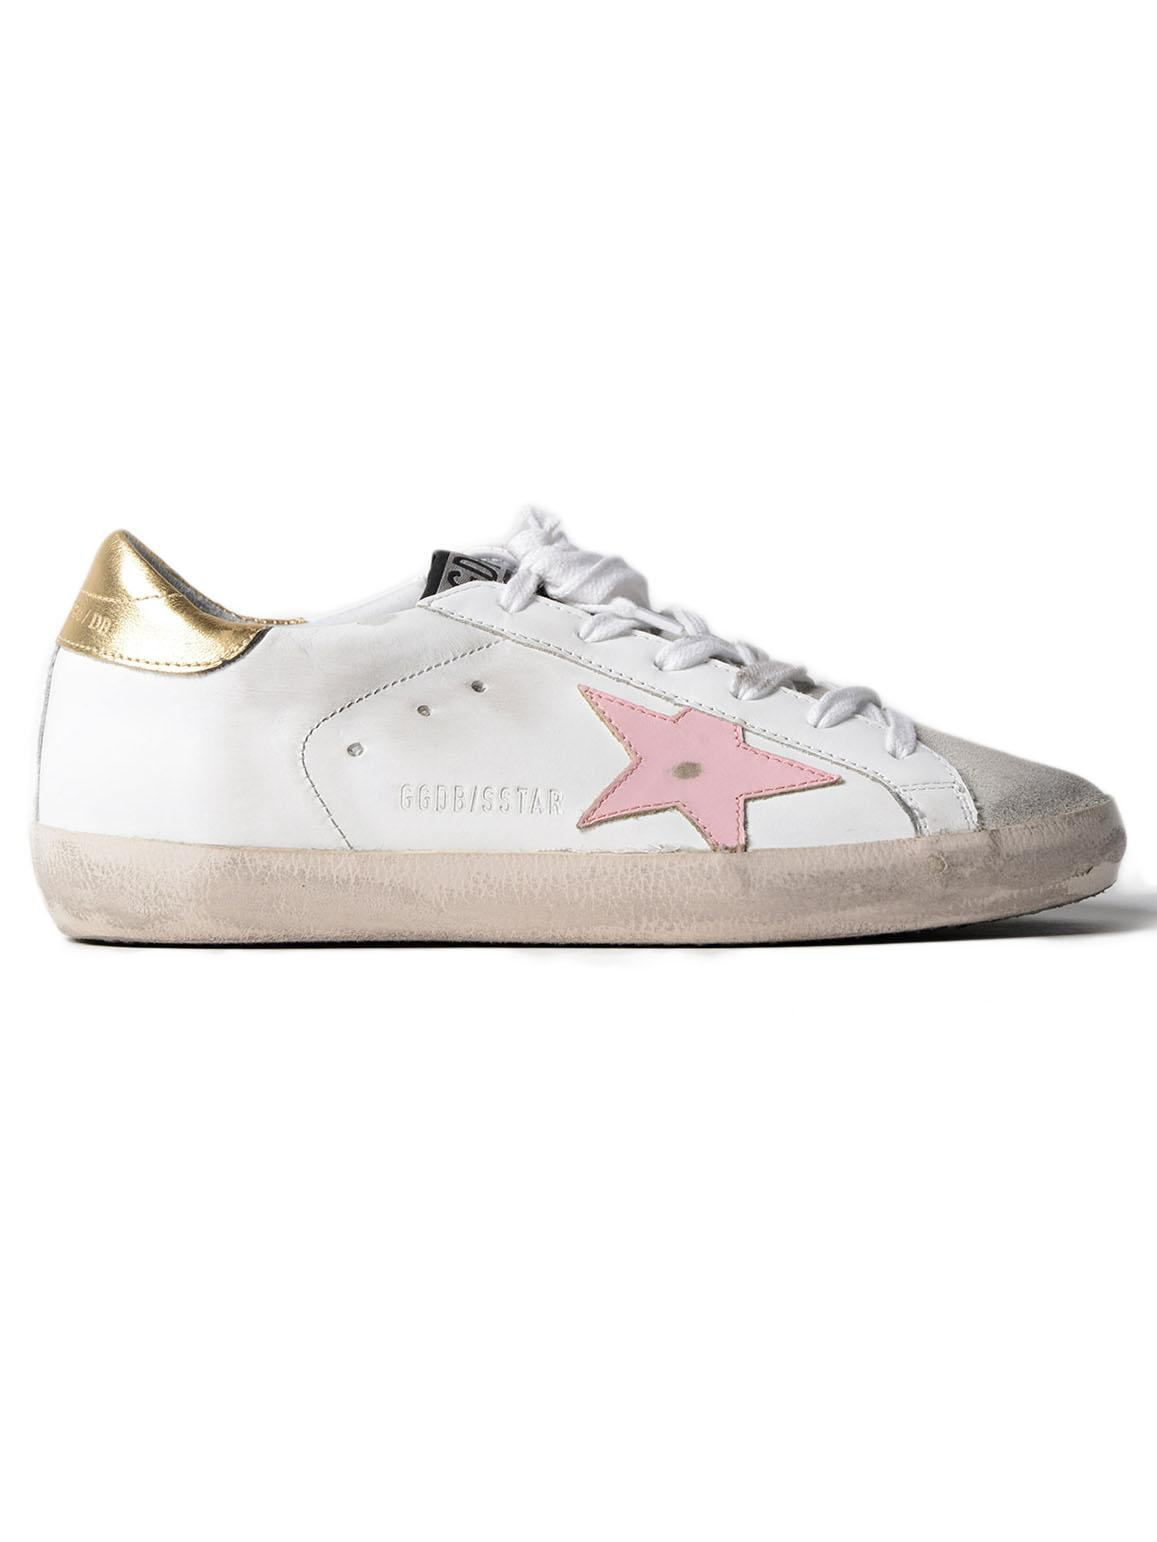 a0230c1883f Golden Goose Deluxe Brand Sneakers Superstar Pink Star in White - Lyst